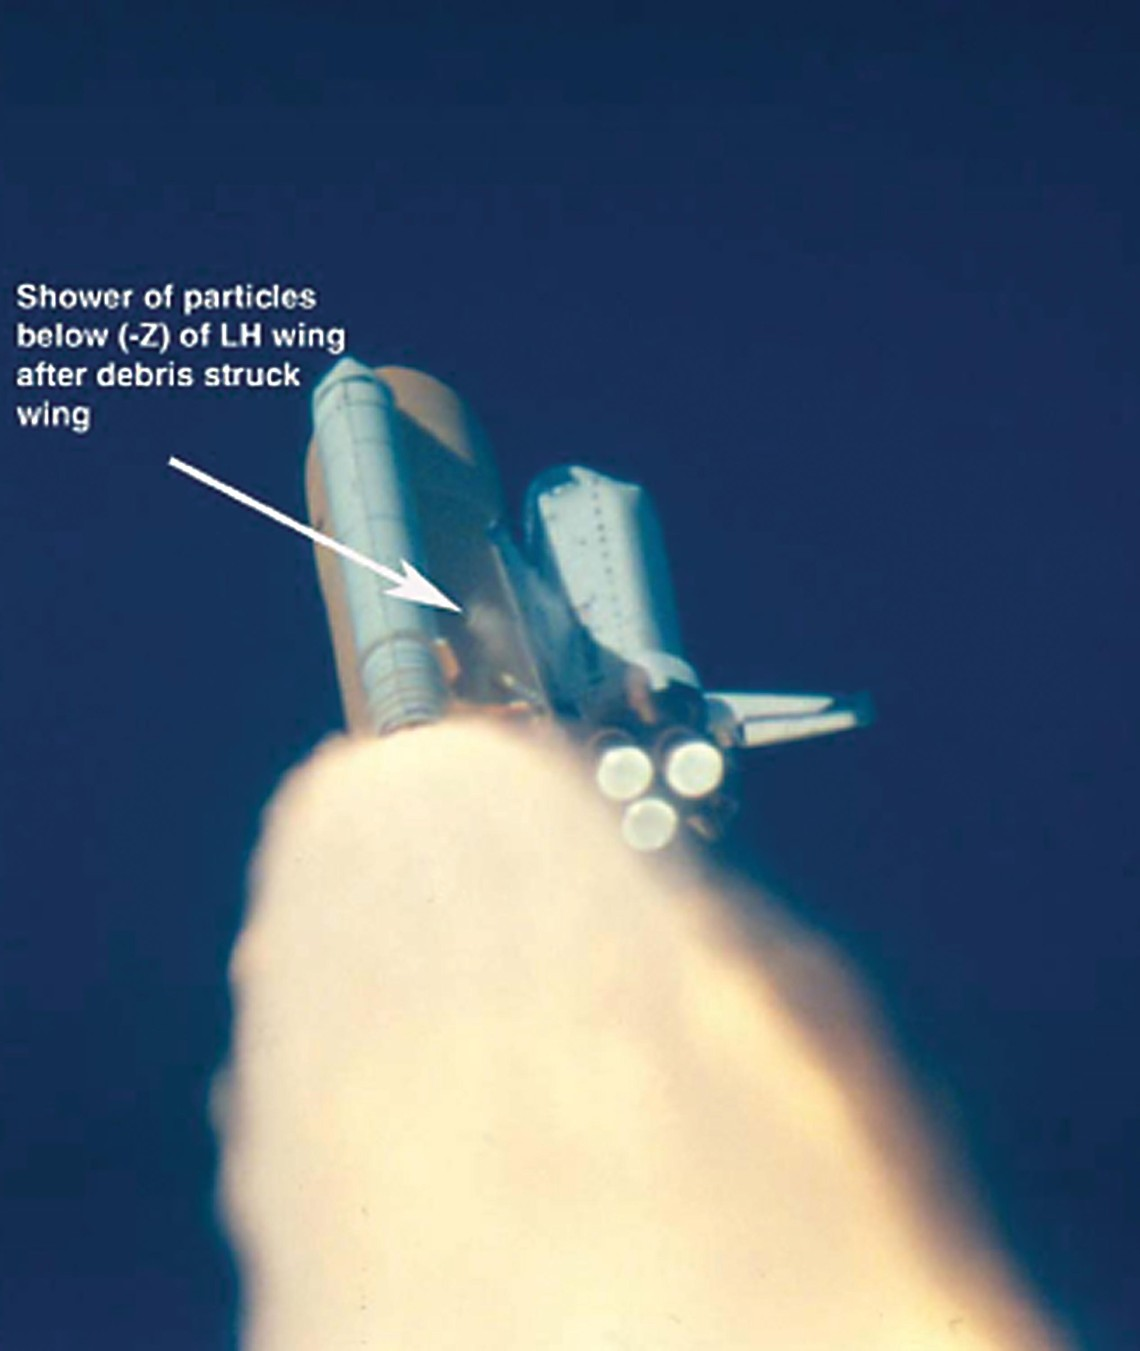 Approximately 33 seconds after liftoff of Space Shuttle Columbia, several particles are observed falling away from the solid rocket booster. These went on to damage the thermal protection system on the wing. (Image credit: NASA)